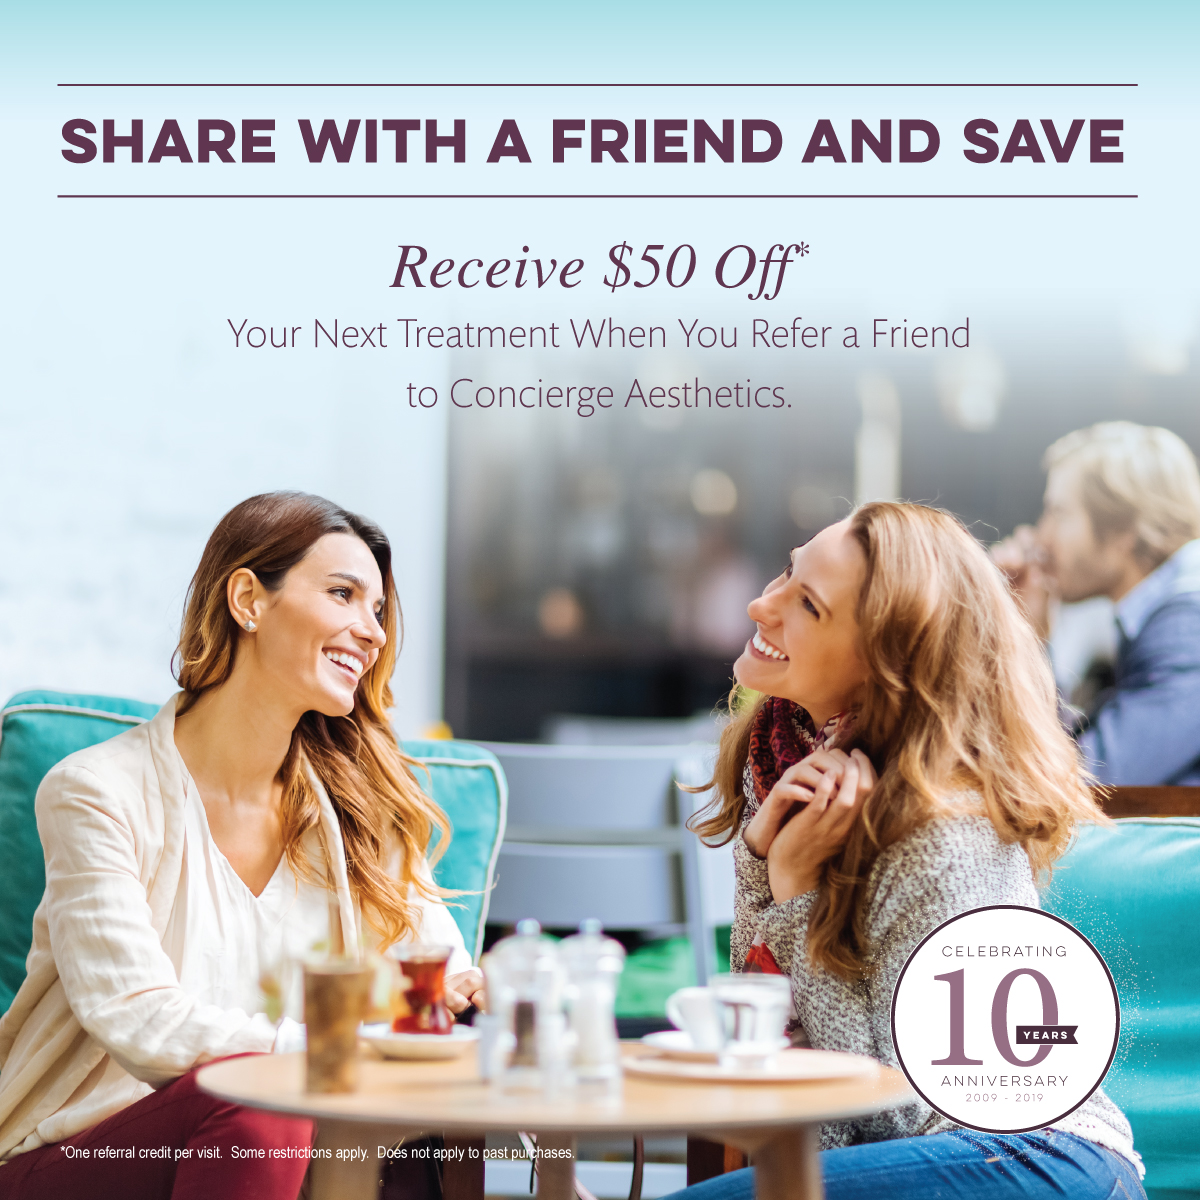 Refer a Friend and Save - Concierge Aesthetics